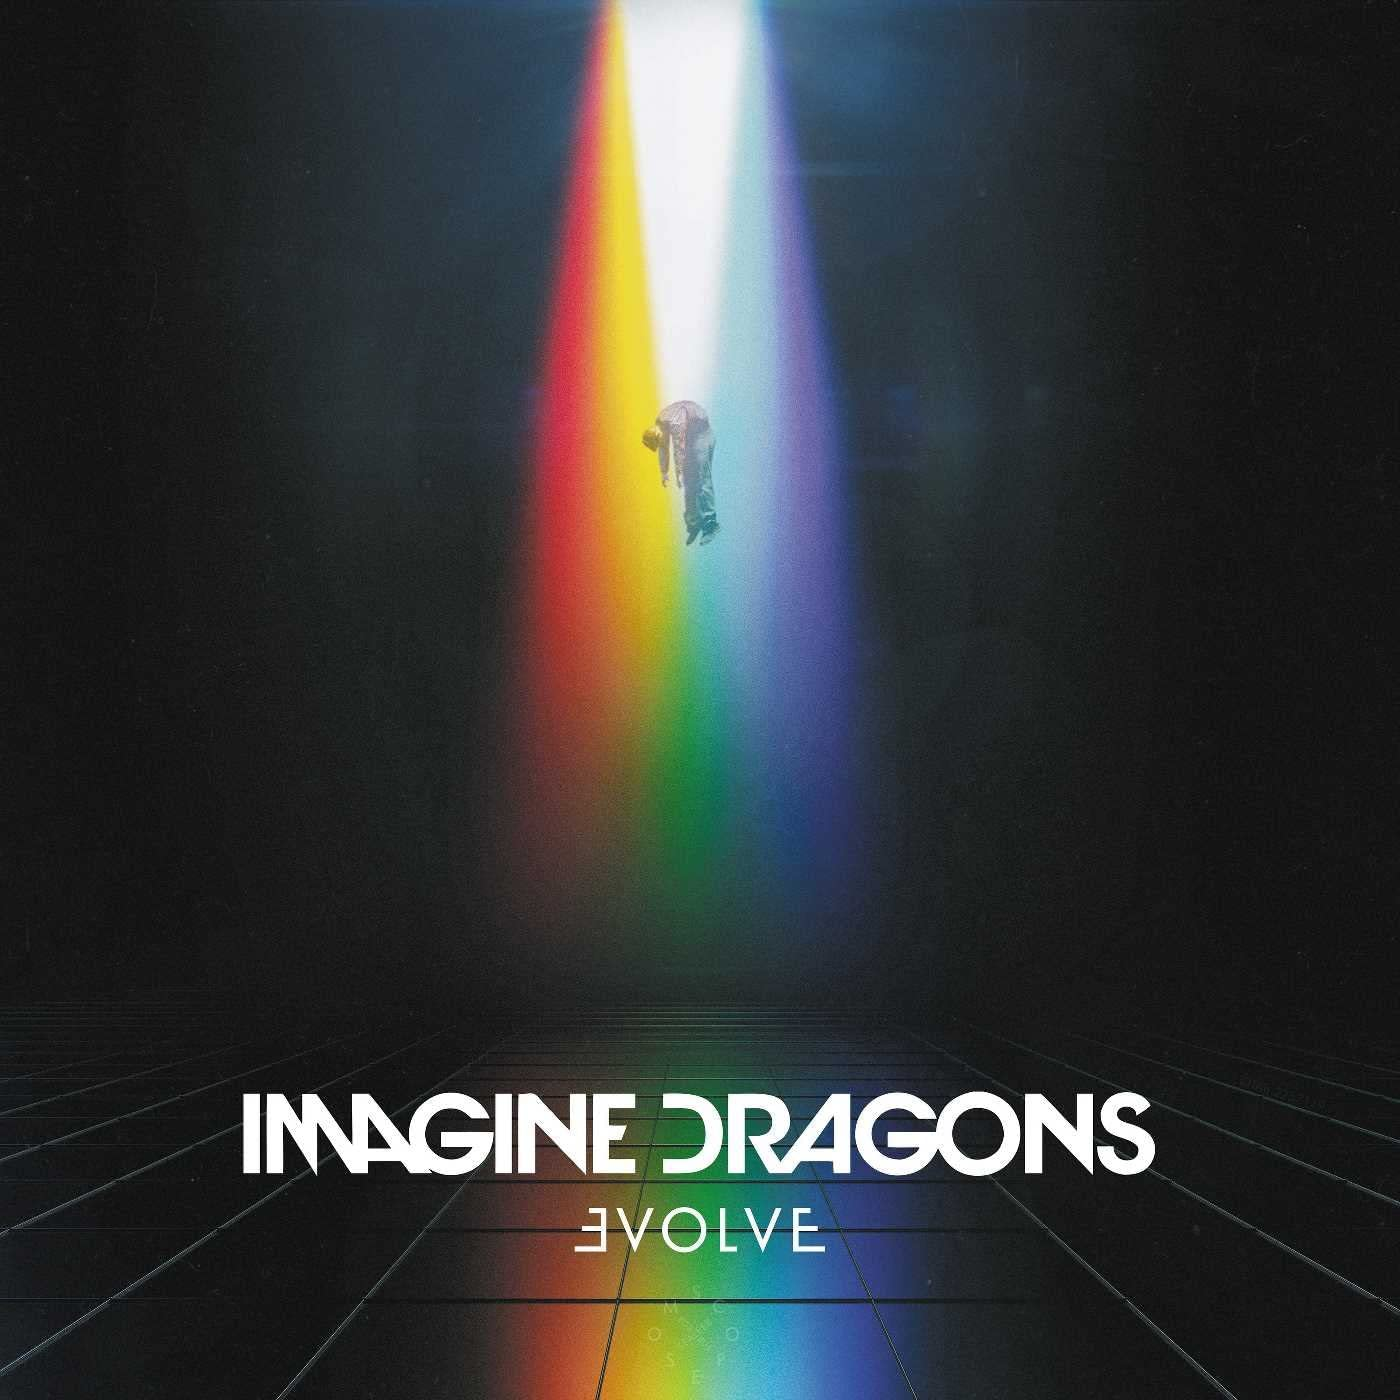 Imagine Dragons/Evolve [LP]